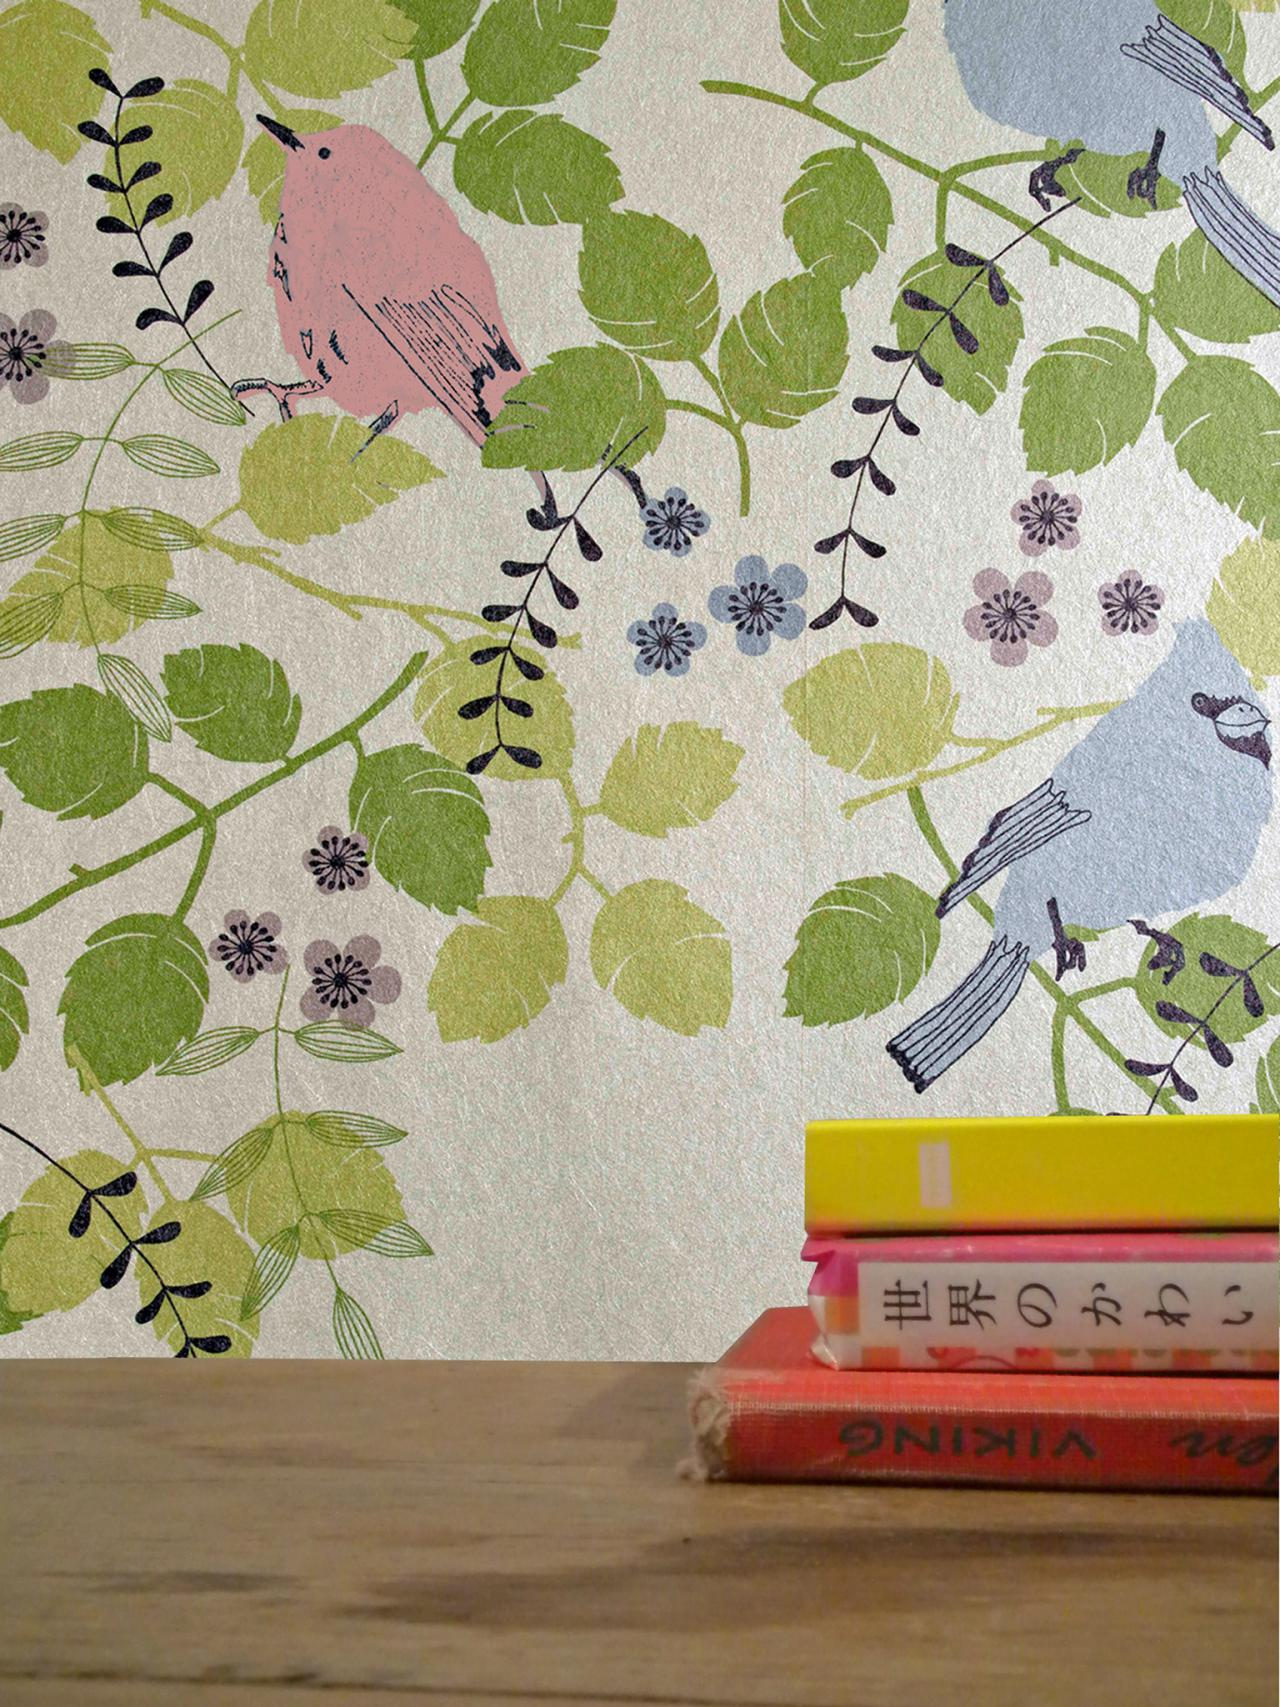 Modern Wallpaper Designs For Walls: 11 Modern Wallpaper Trends To Try